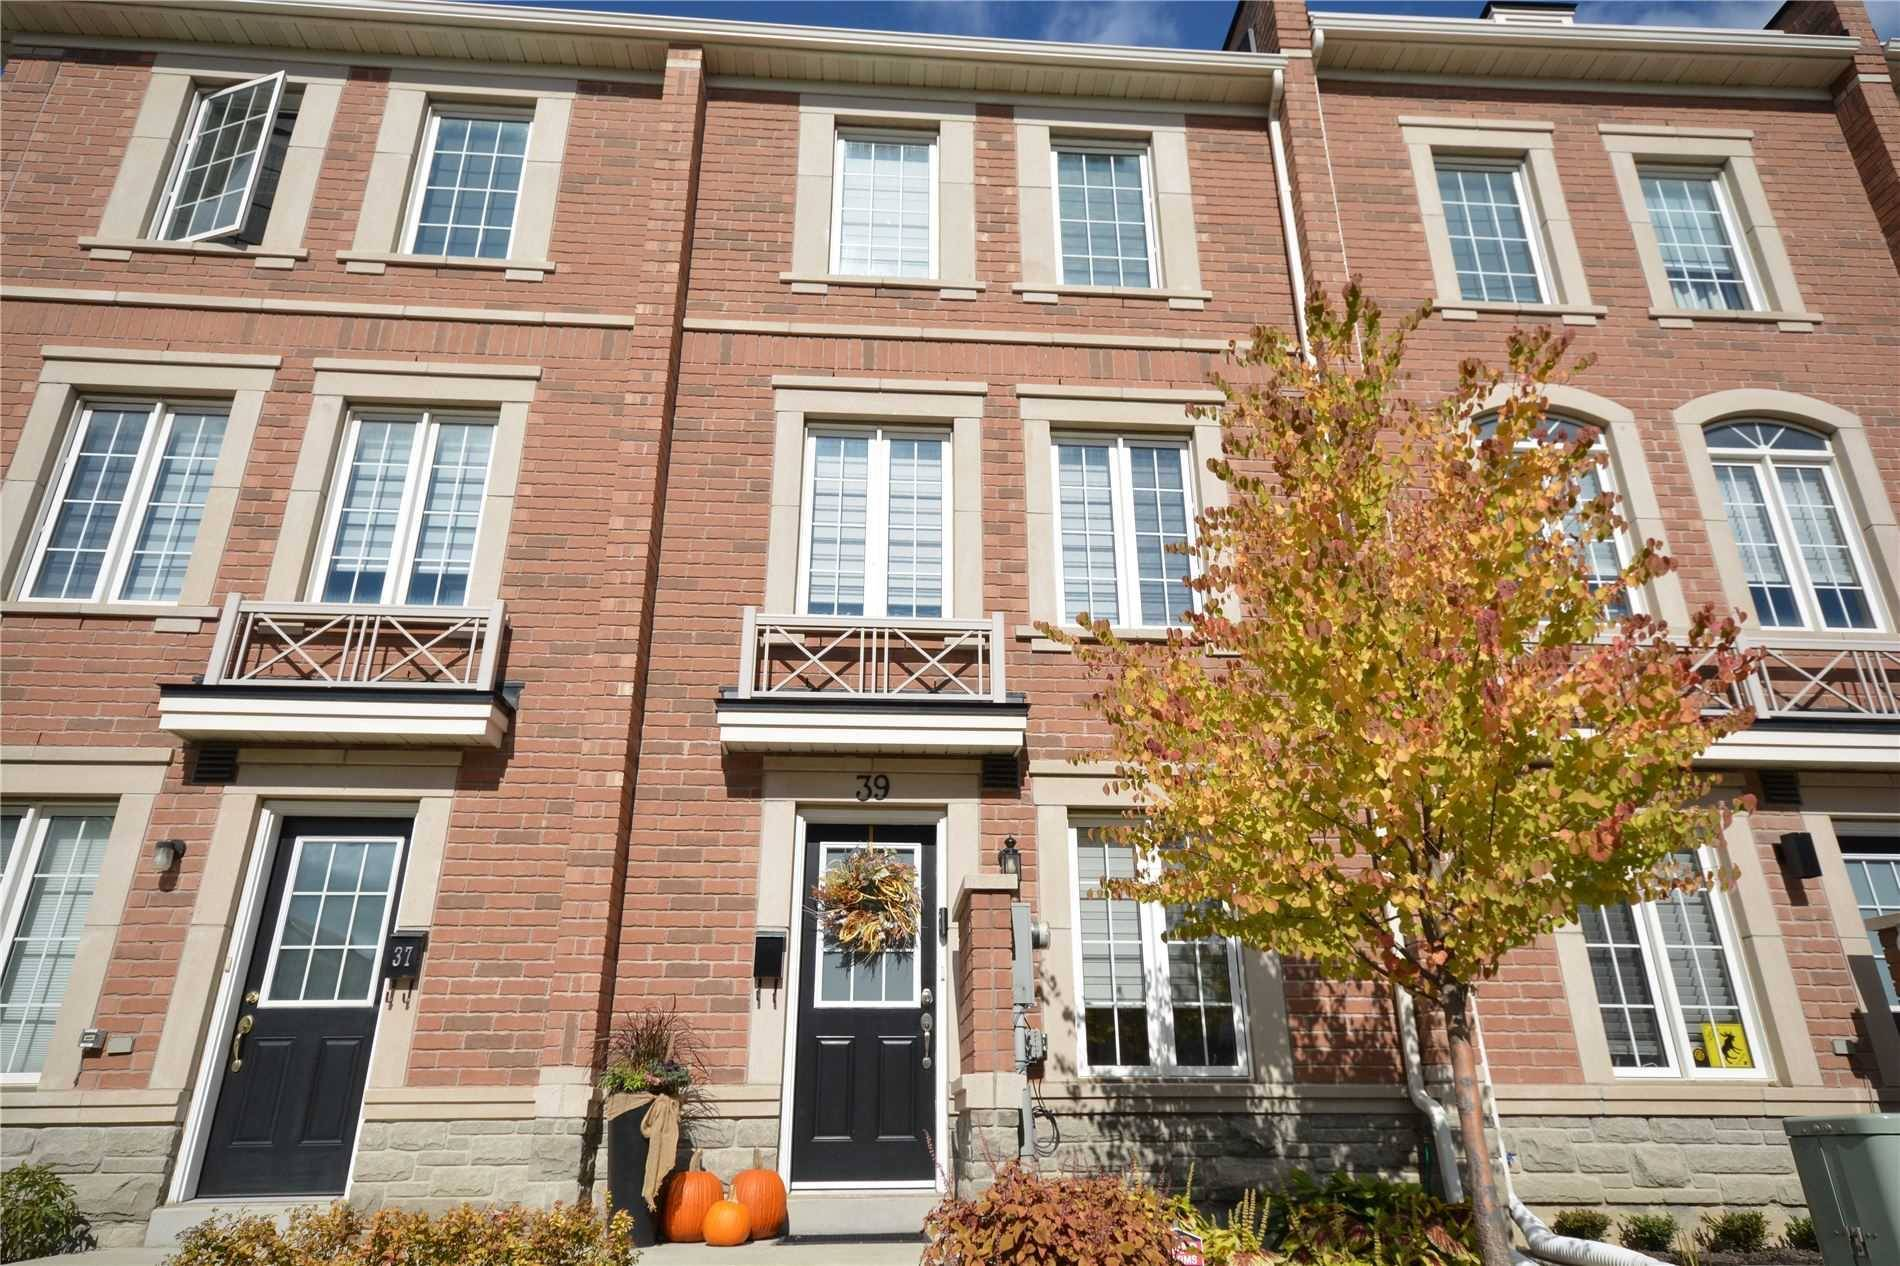 Townhouse for sale at 39 Ted Wray Circ Toronto Ontario - MLS: W4613468